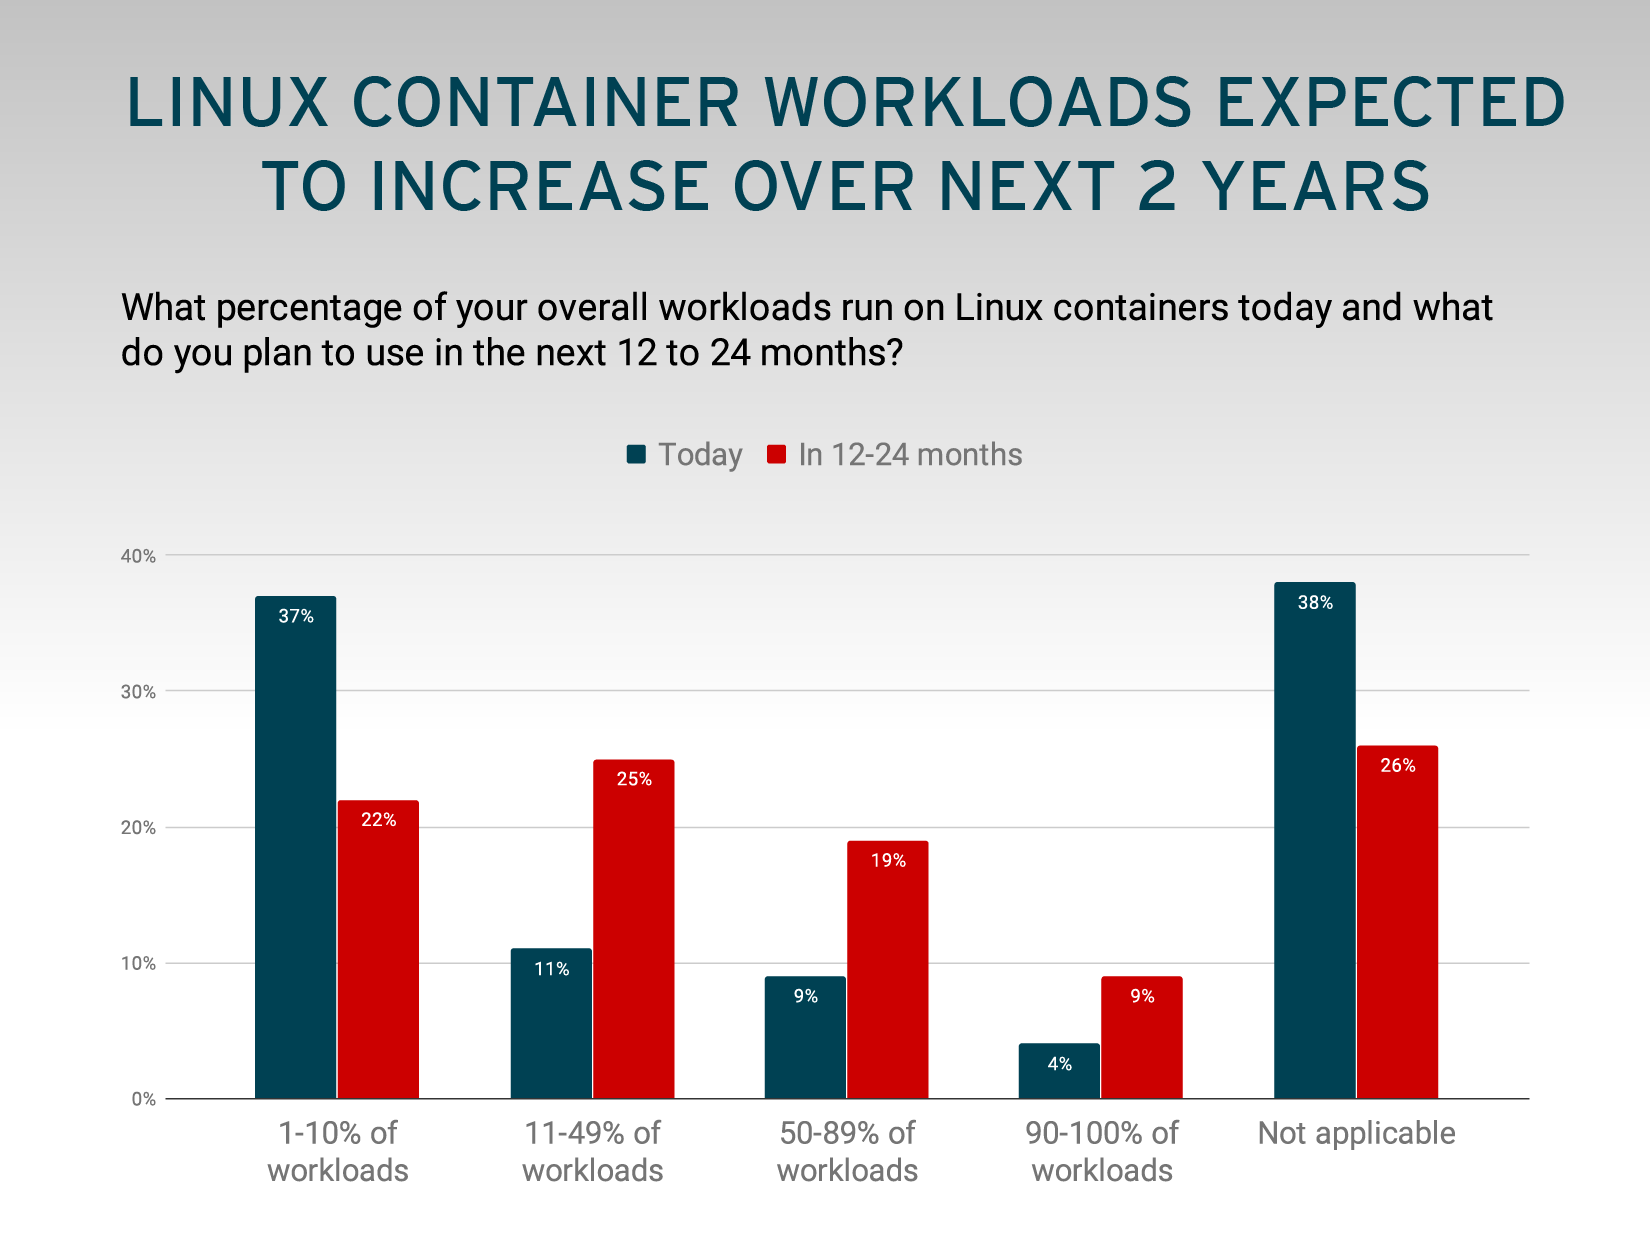 Linux Container Workloads Expected to Increase Over Next 2 Years